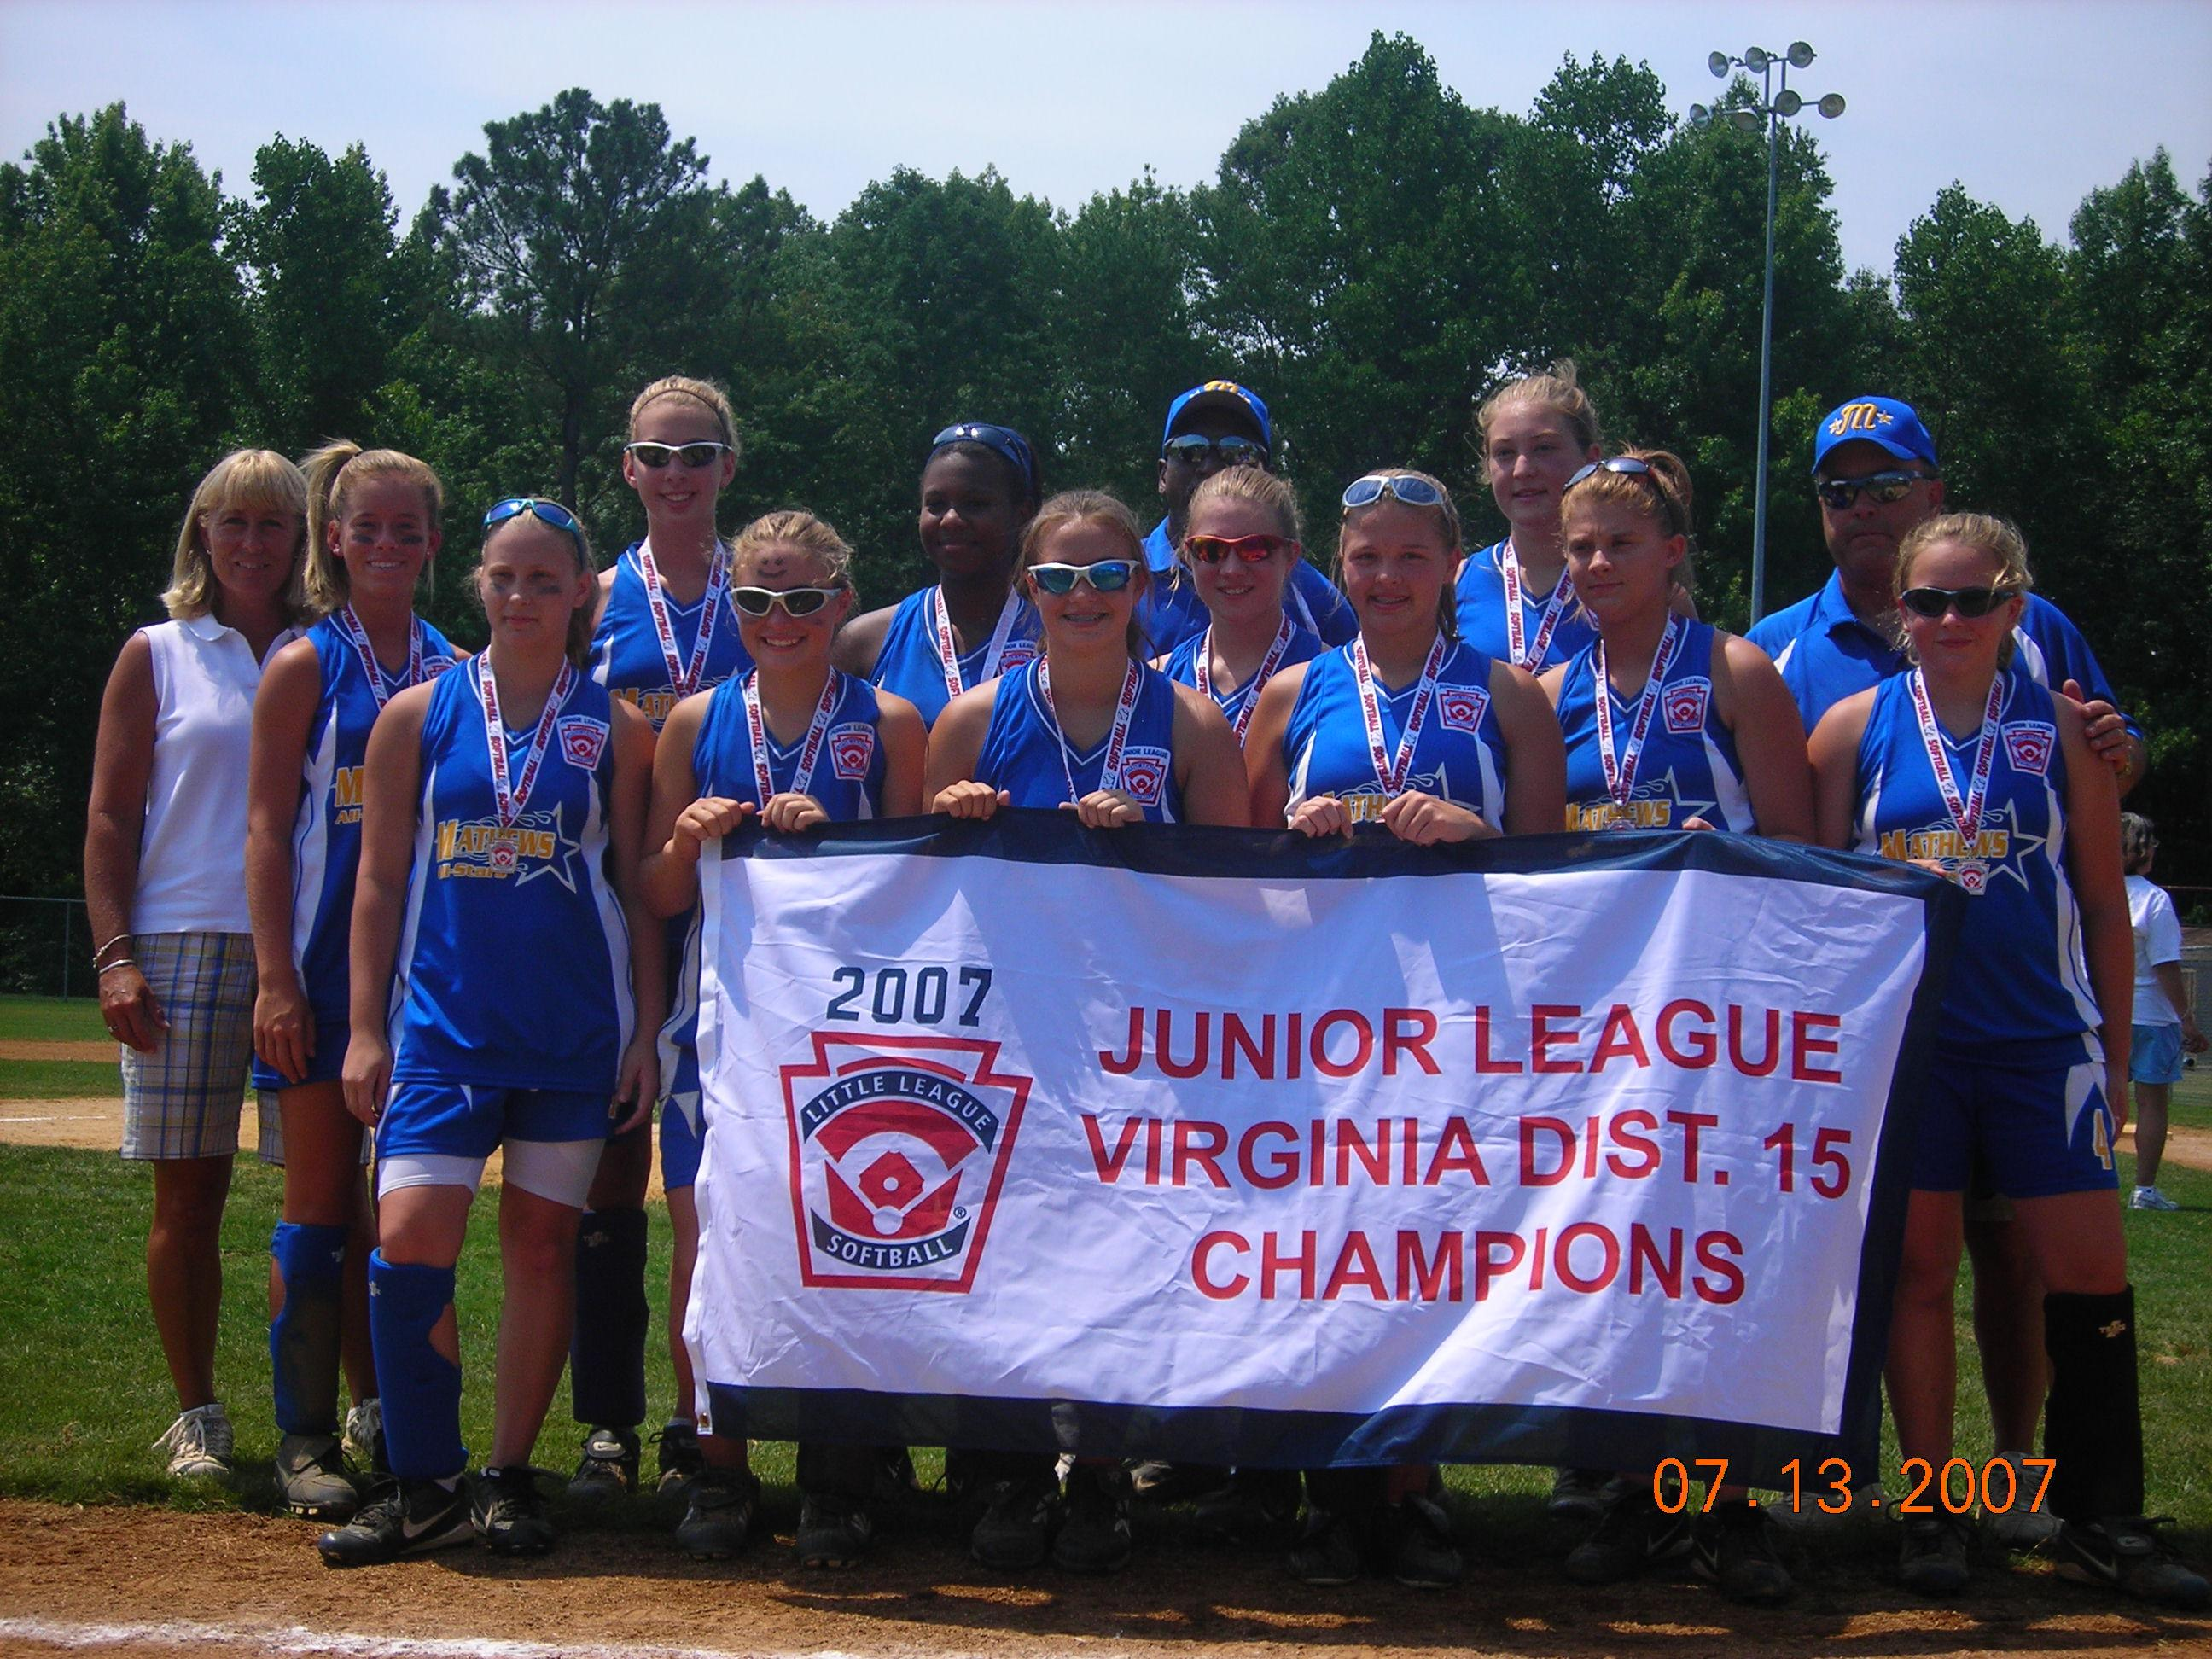 2007 Junior Softball Cahmpions